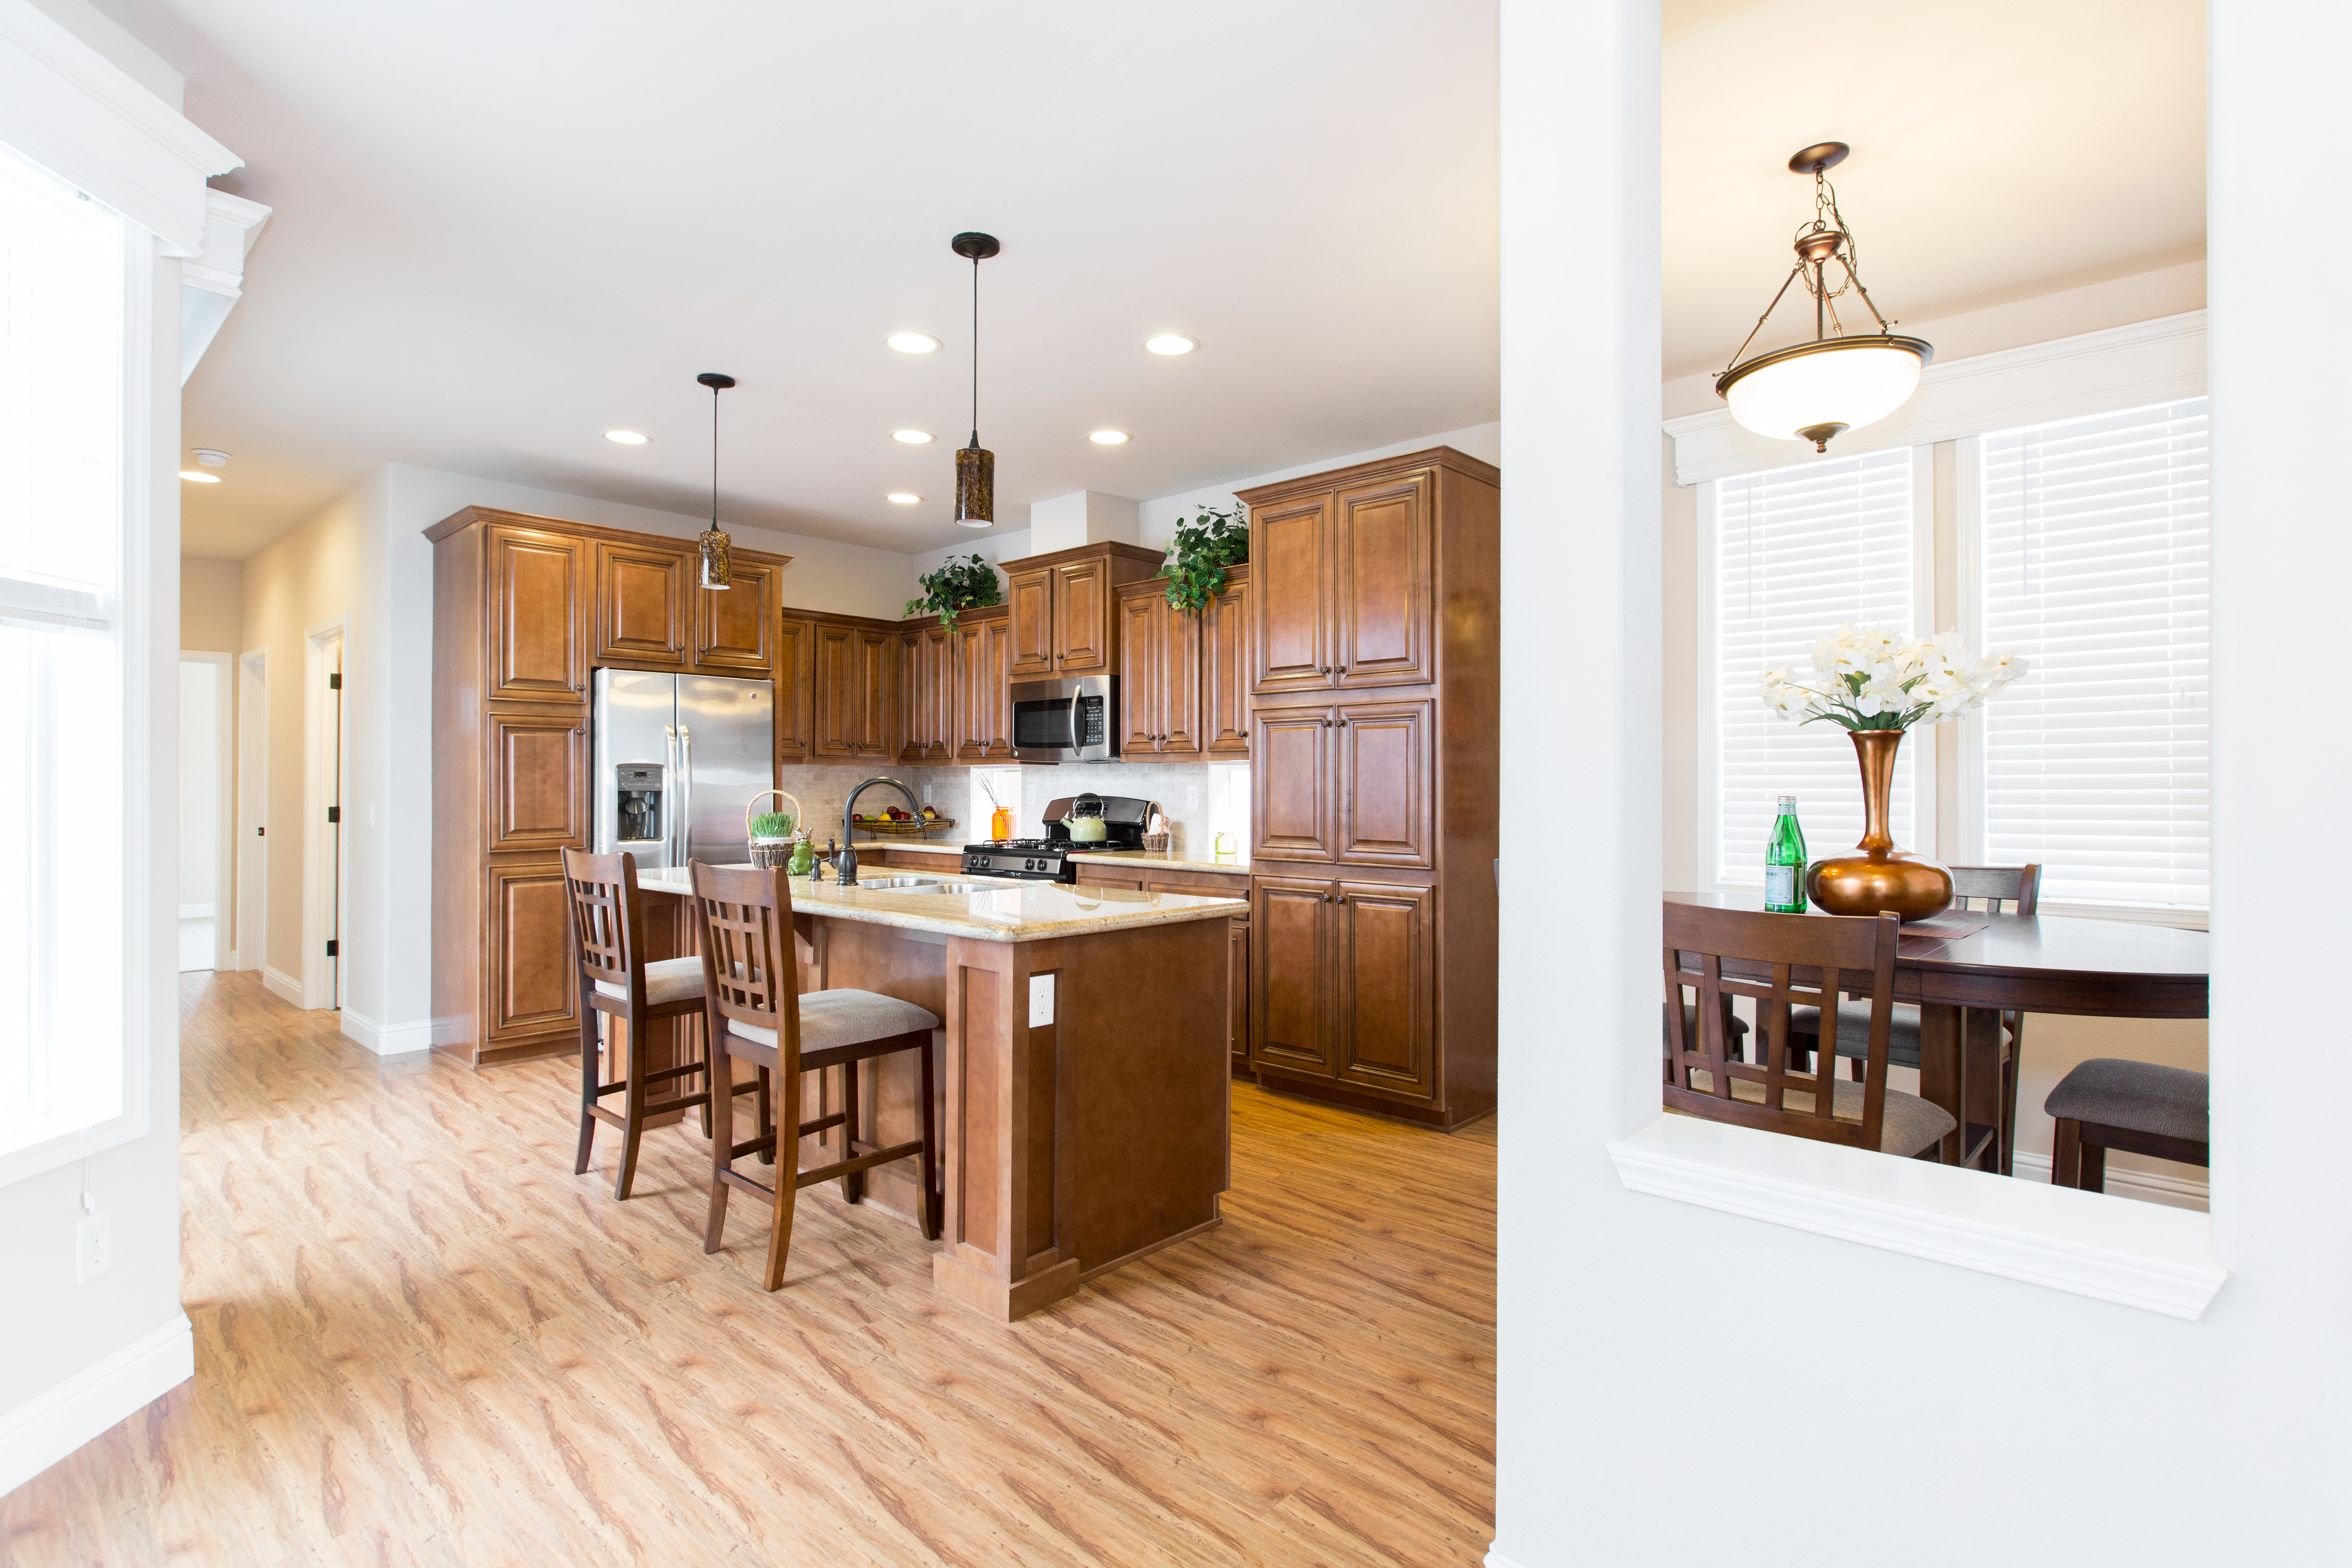 ... Beautiful Manufactured Home Kitchen With Island And Wood Cabinets.